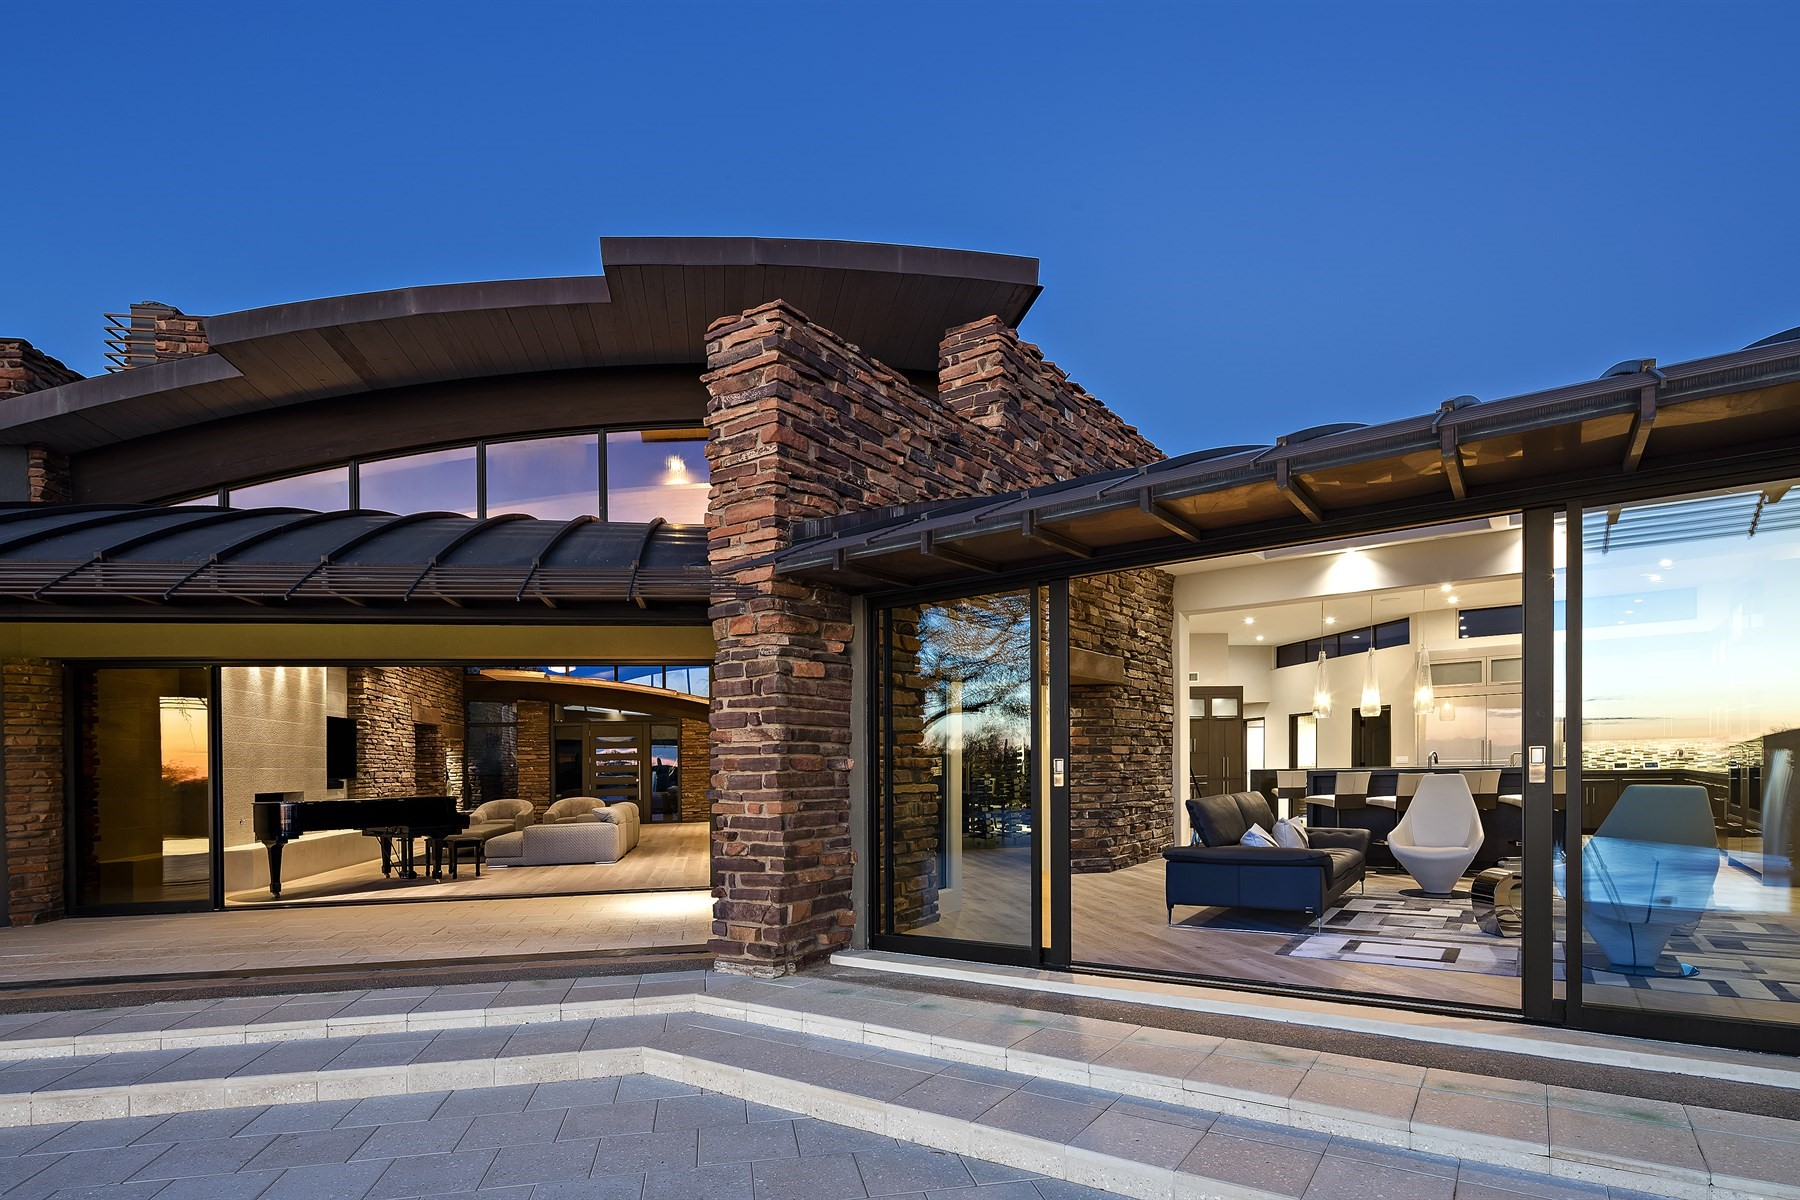 단독 가정 주택 용 매매 에 Timeless contemporary estate by Bob Bacon 10040 E Happy Valley Rd #5 Scottsdale, 아리조나, 85255 미국